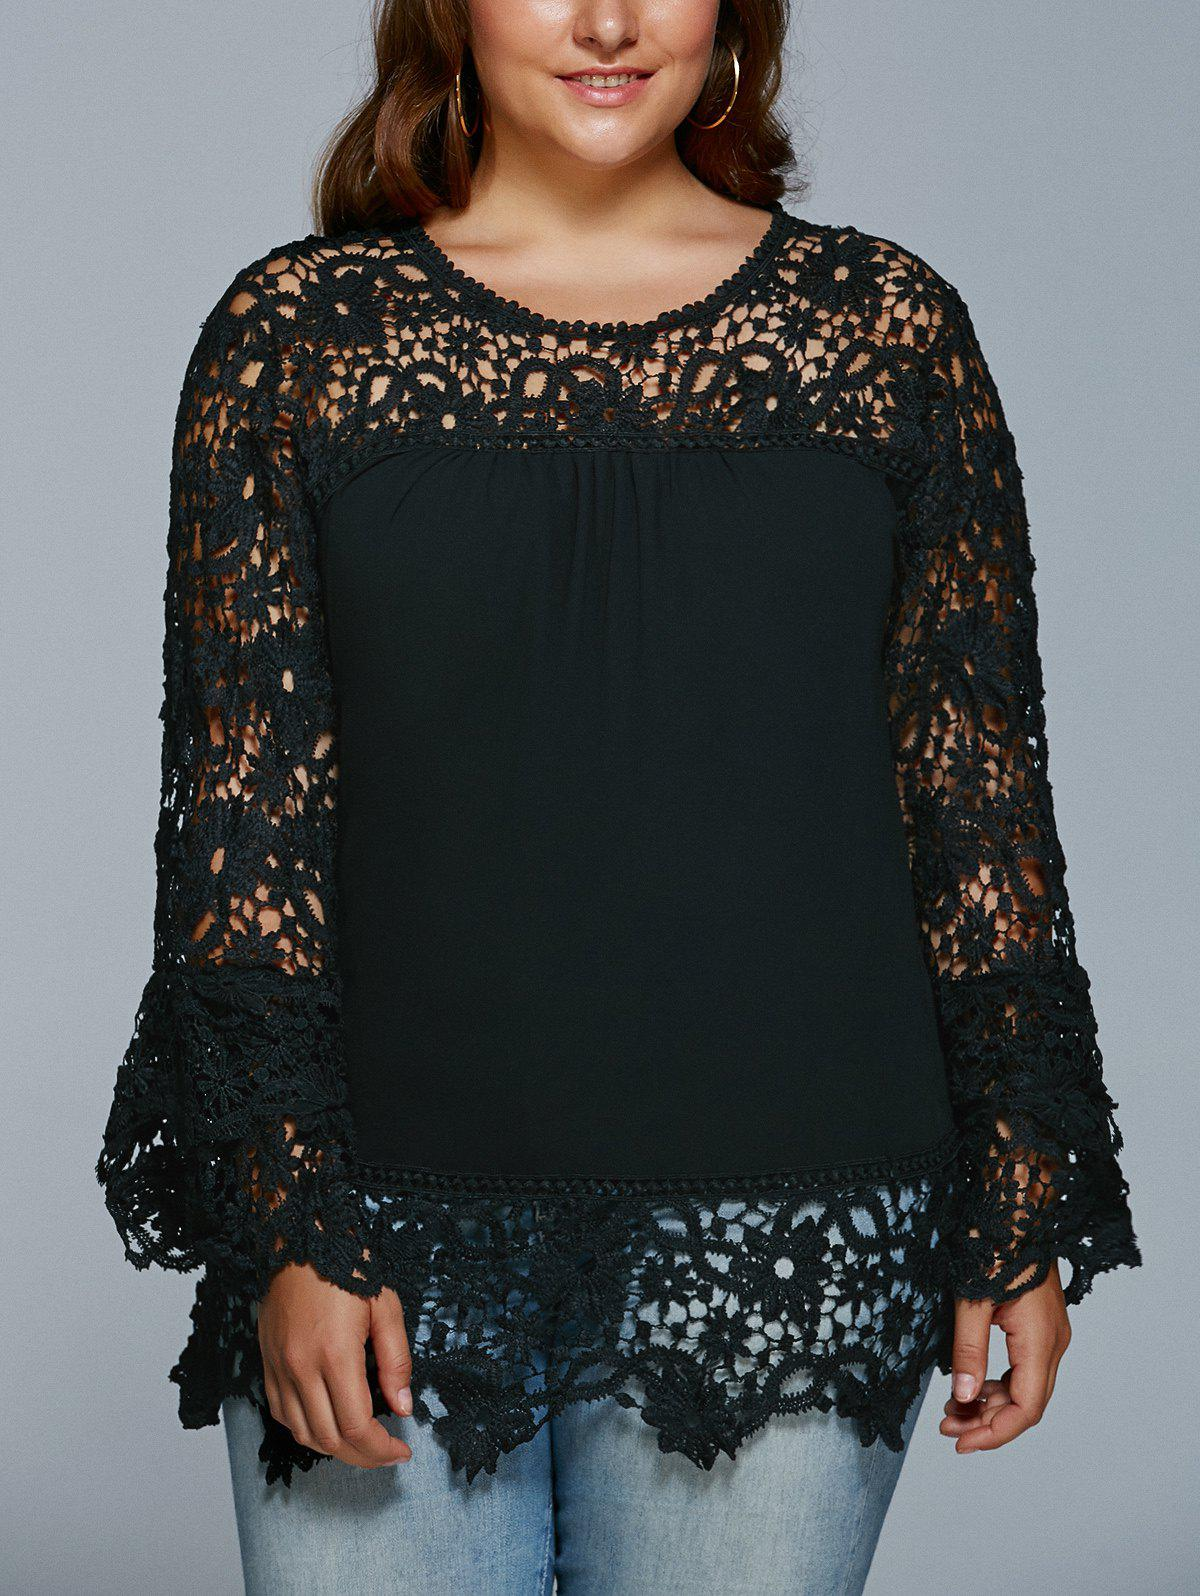 Lace Spliced Hollow Out Plus Size BlouseWOMEN<br><br>Size: XL; Color: BLACK; Material: Lace,Polyester; Shirt Length: Regular; Sleeve Length: Full; Collar: Jewel Neck; Style: Fashion; Season: Fall,Spring; Pattern Type: Patchwork; Weight: 0.3500kg; Package Contents: 1 x Blouse;